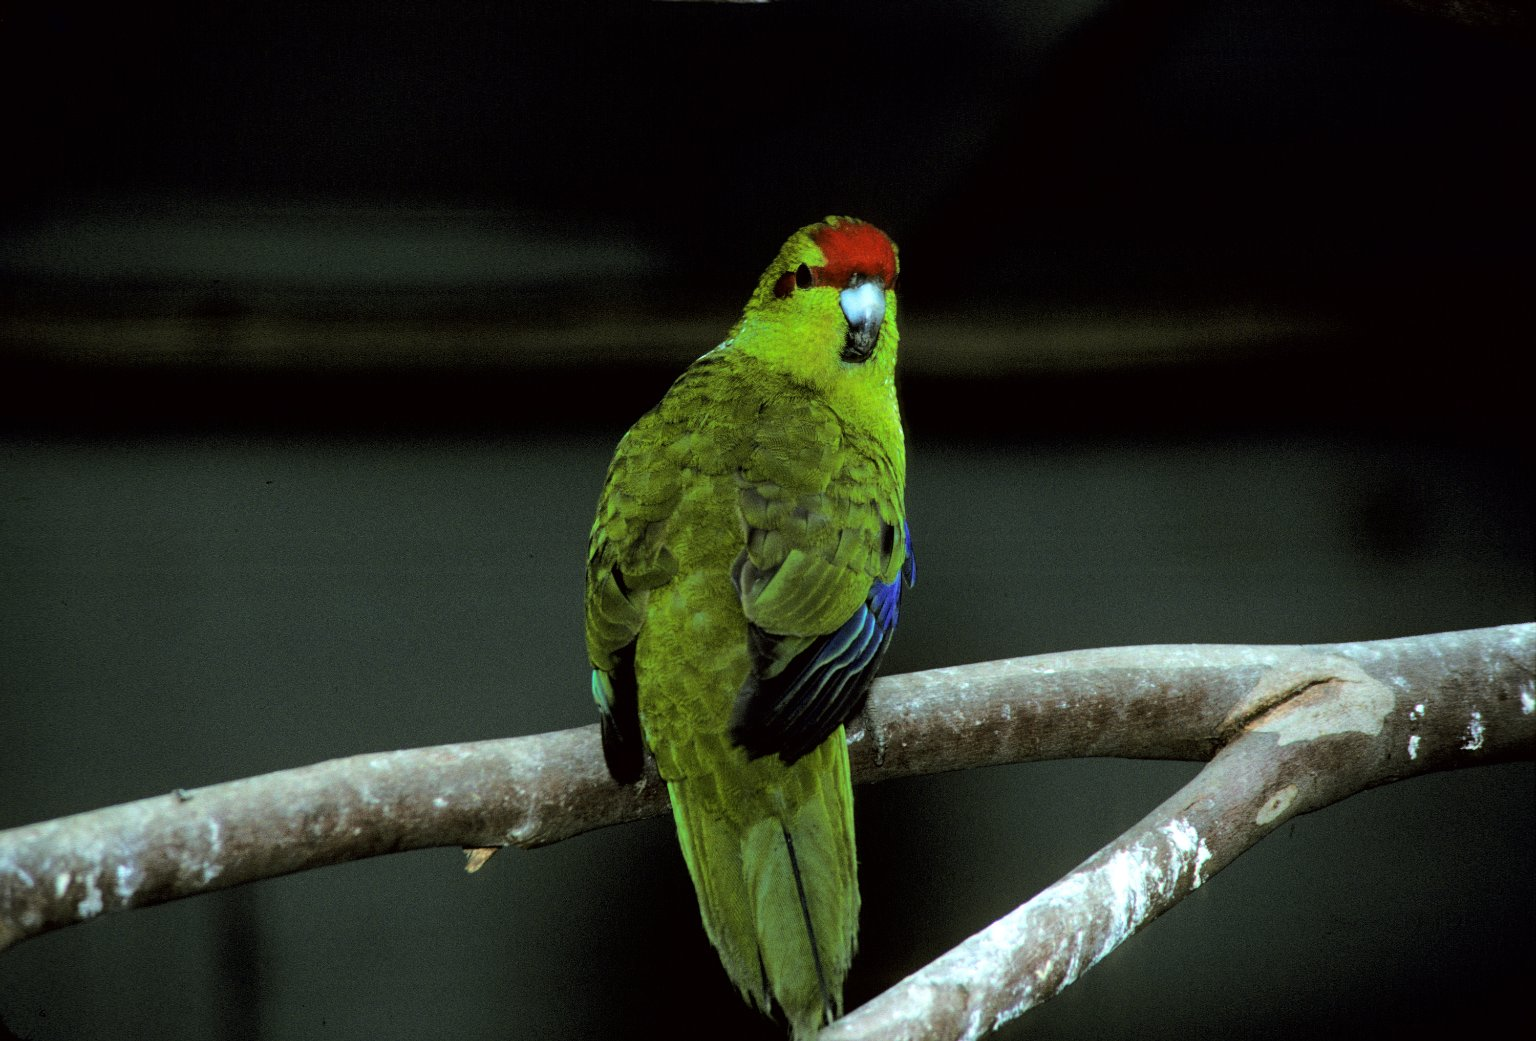 Red-crowned Parakeet, sometimes called Red-fronted Parakeet